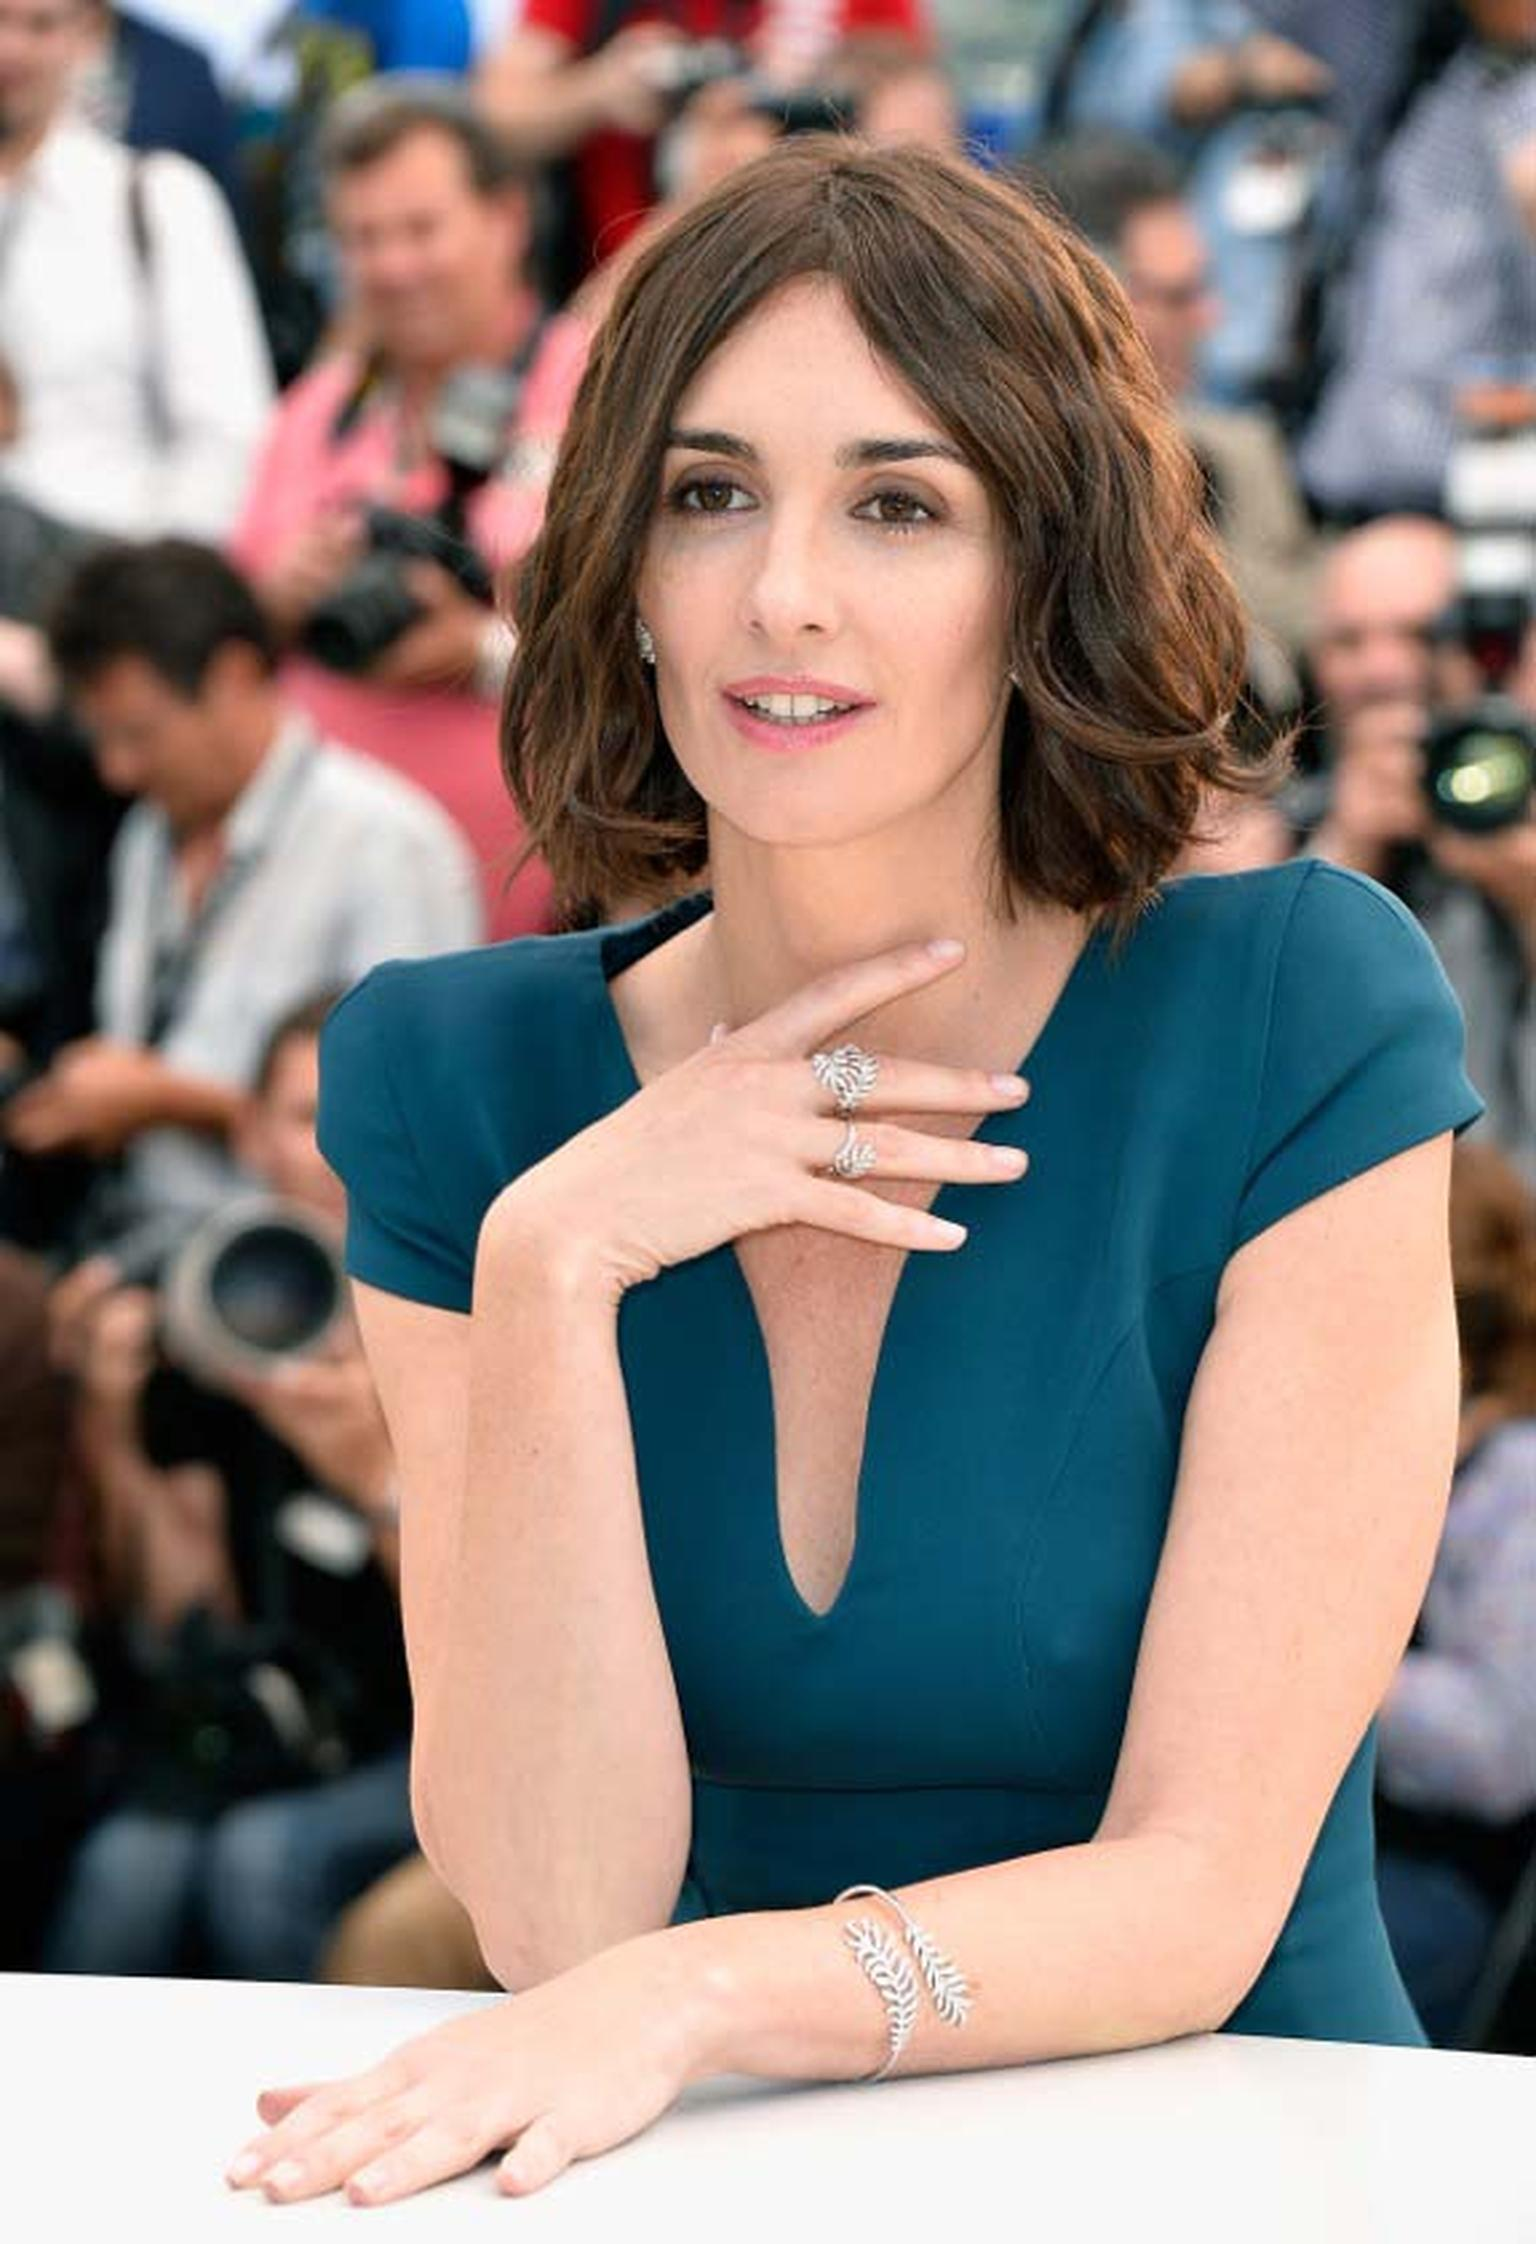 Fellow 'Grace of Monaco' actress Paz Vega attended the photo call in a chic, cap-sleeved Zuhar Murad dress, accessorised with 'Bouton de Camélia' earrings and a 'Plume' bracelet and rings, all in white gold and diamonds, by Chanel